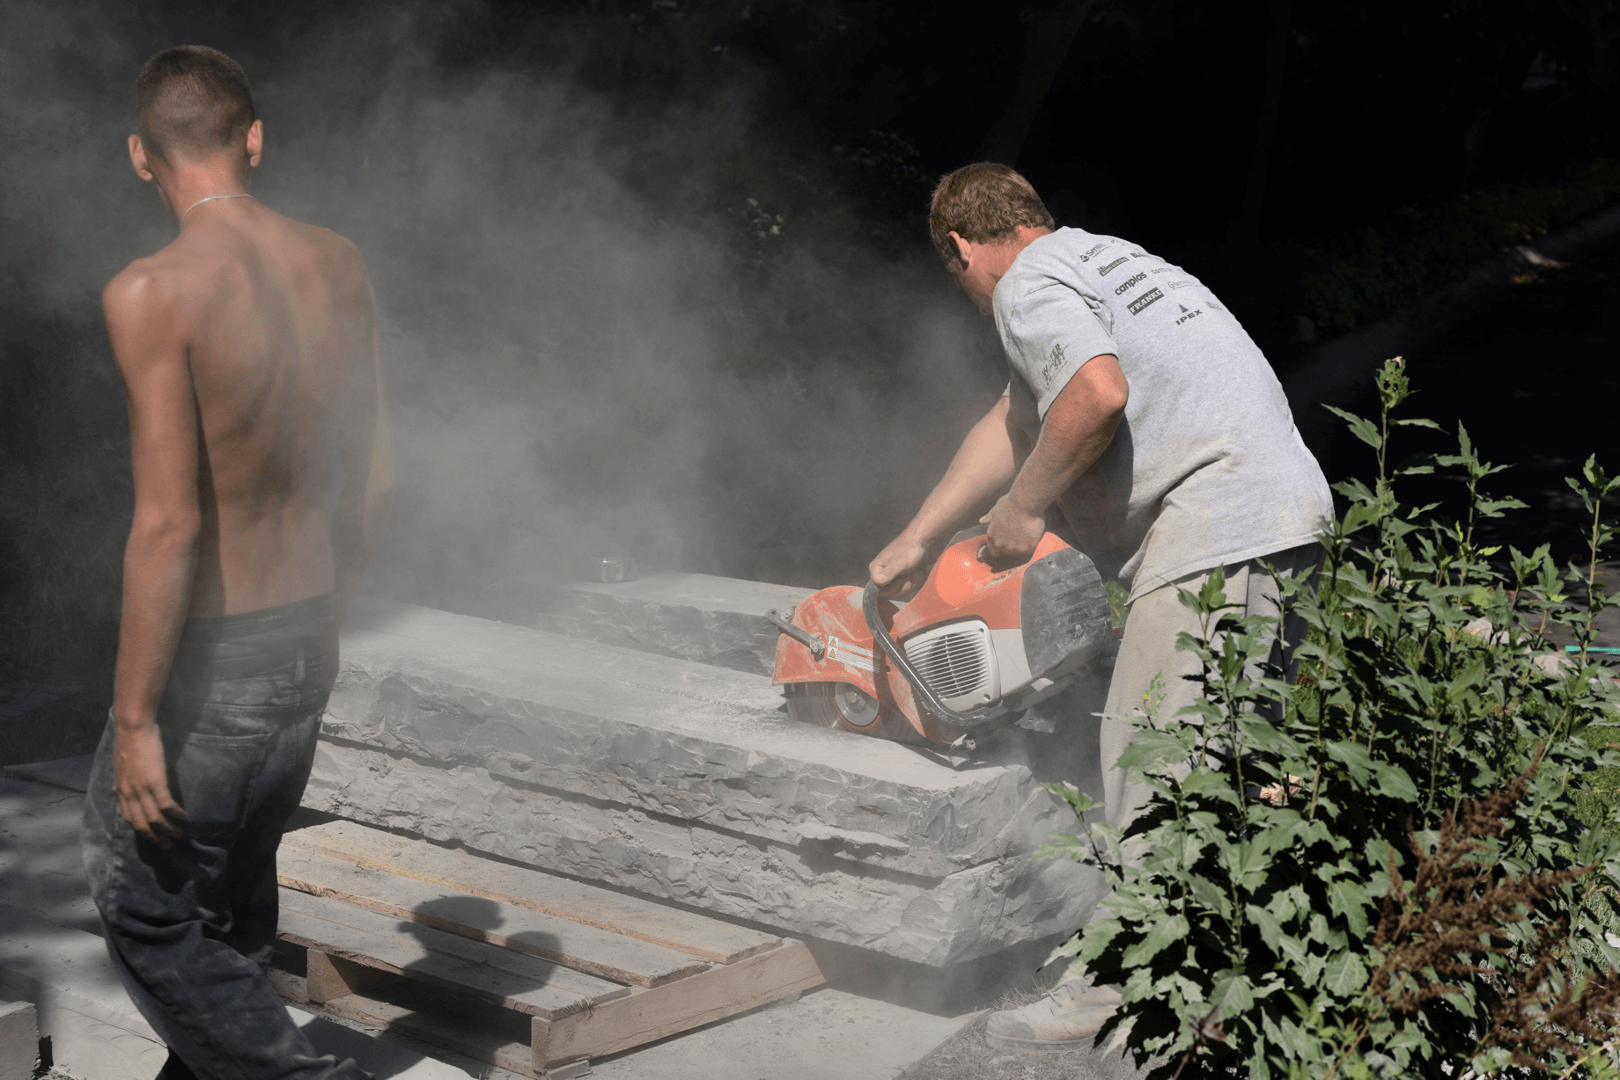 Company Fined As Employee Exposed To Silica Dust